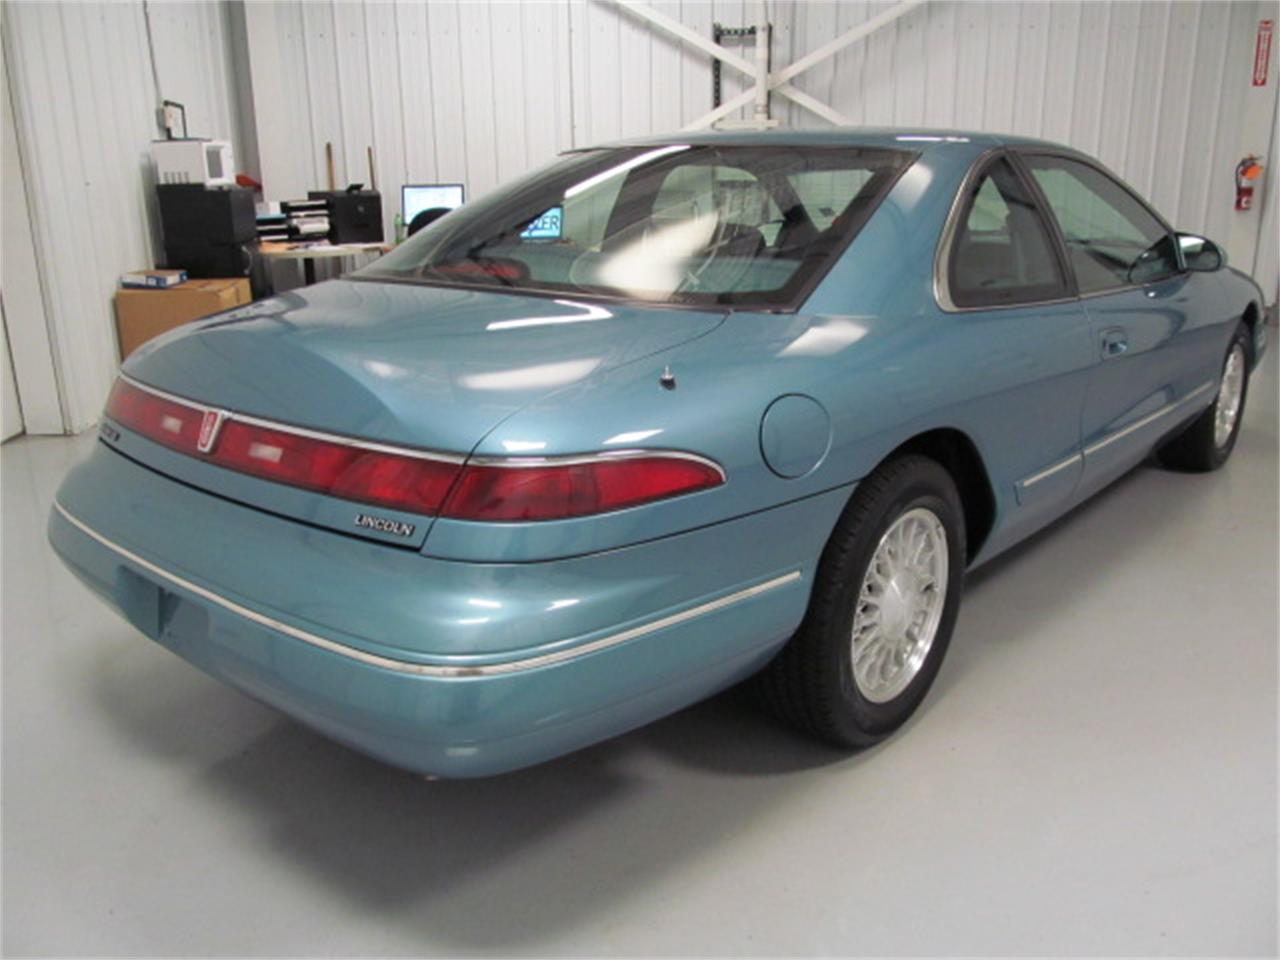 Large Picture of '93 Lincoln Mark VIII - $9,900.00 - JL9Z